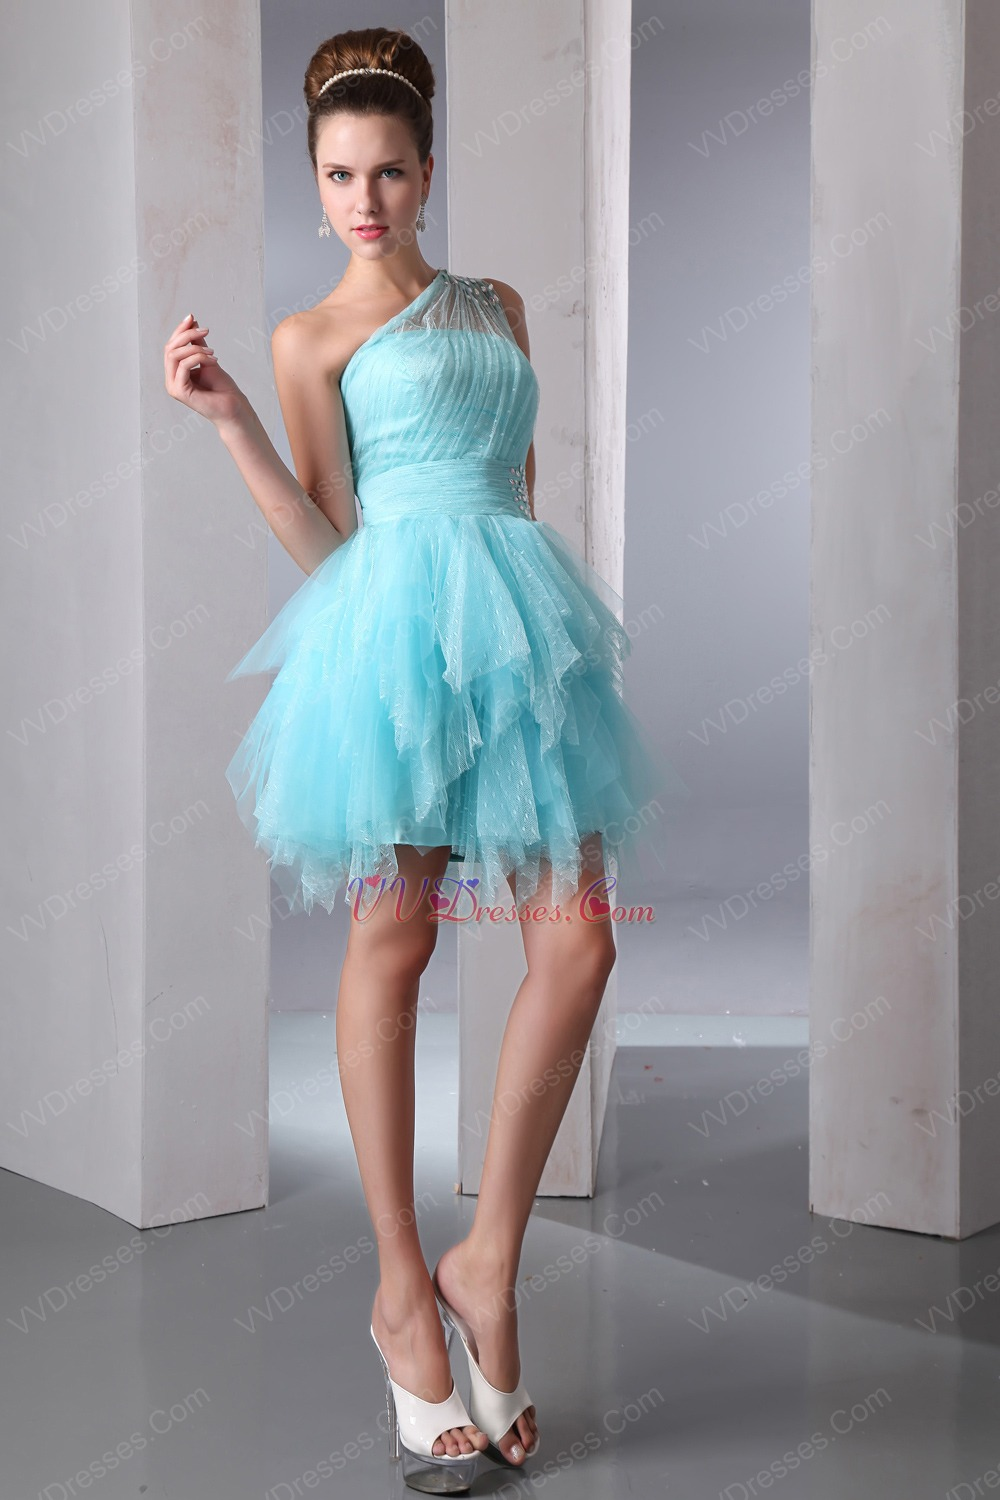 homecoming dresses under 20 - Dress Yp